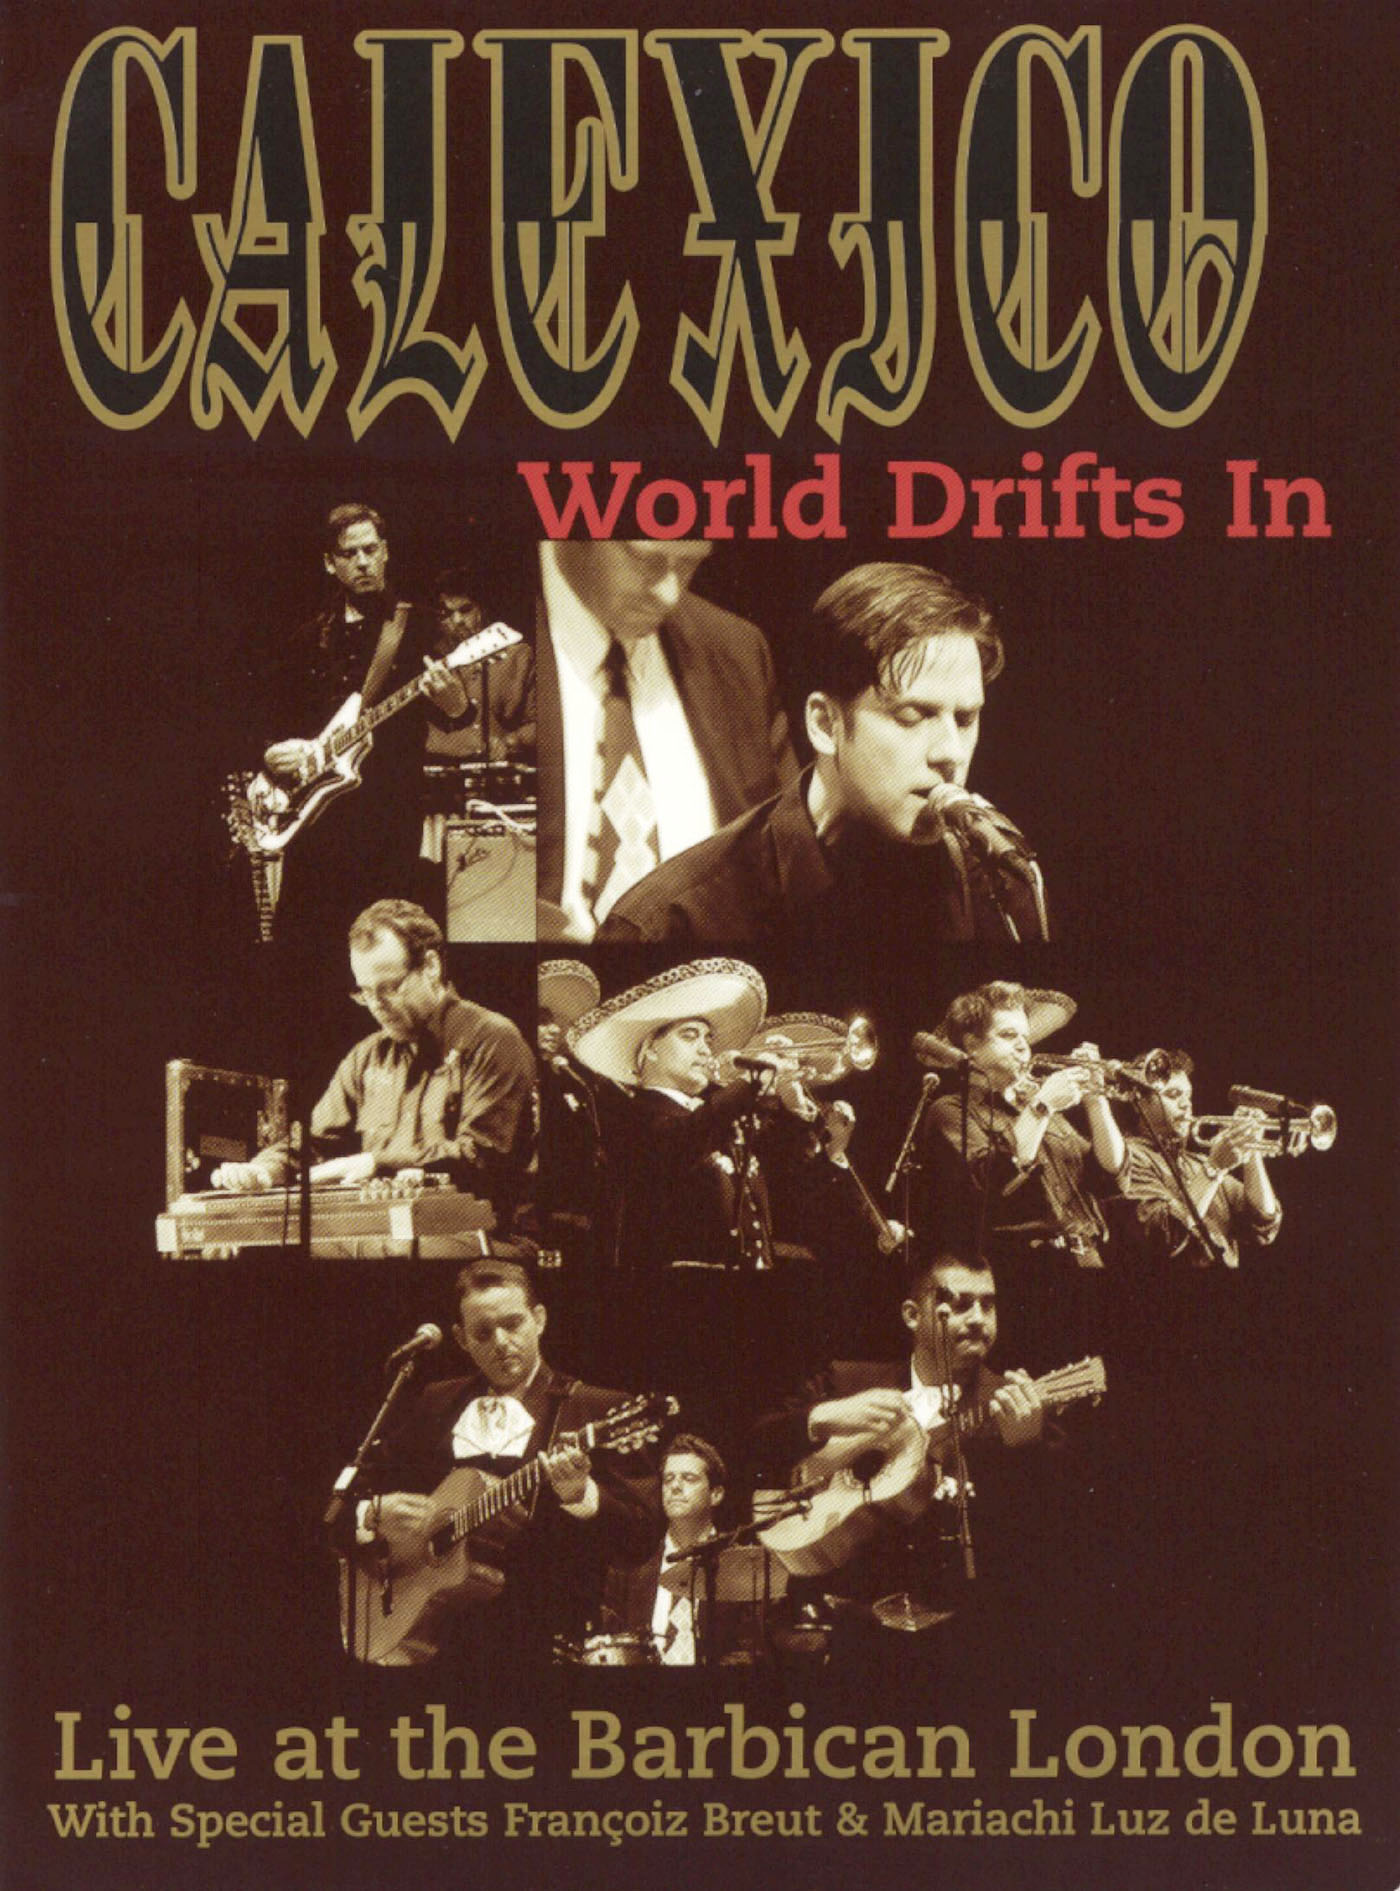 Calexico: World Drifts In - Live at the Barbican London